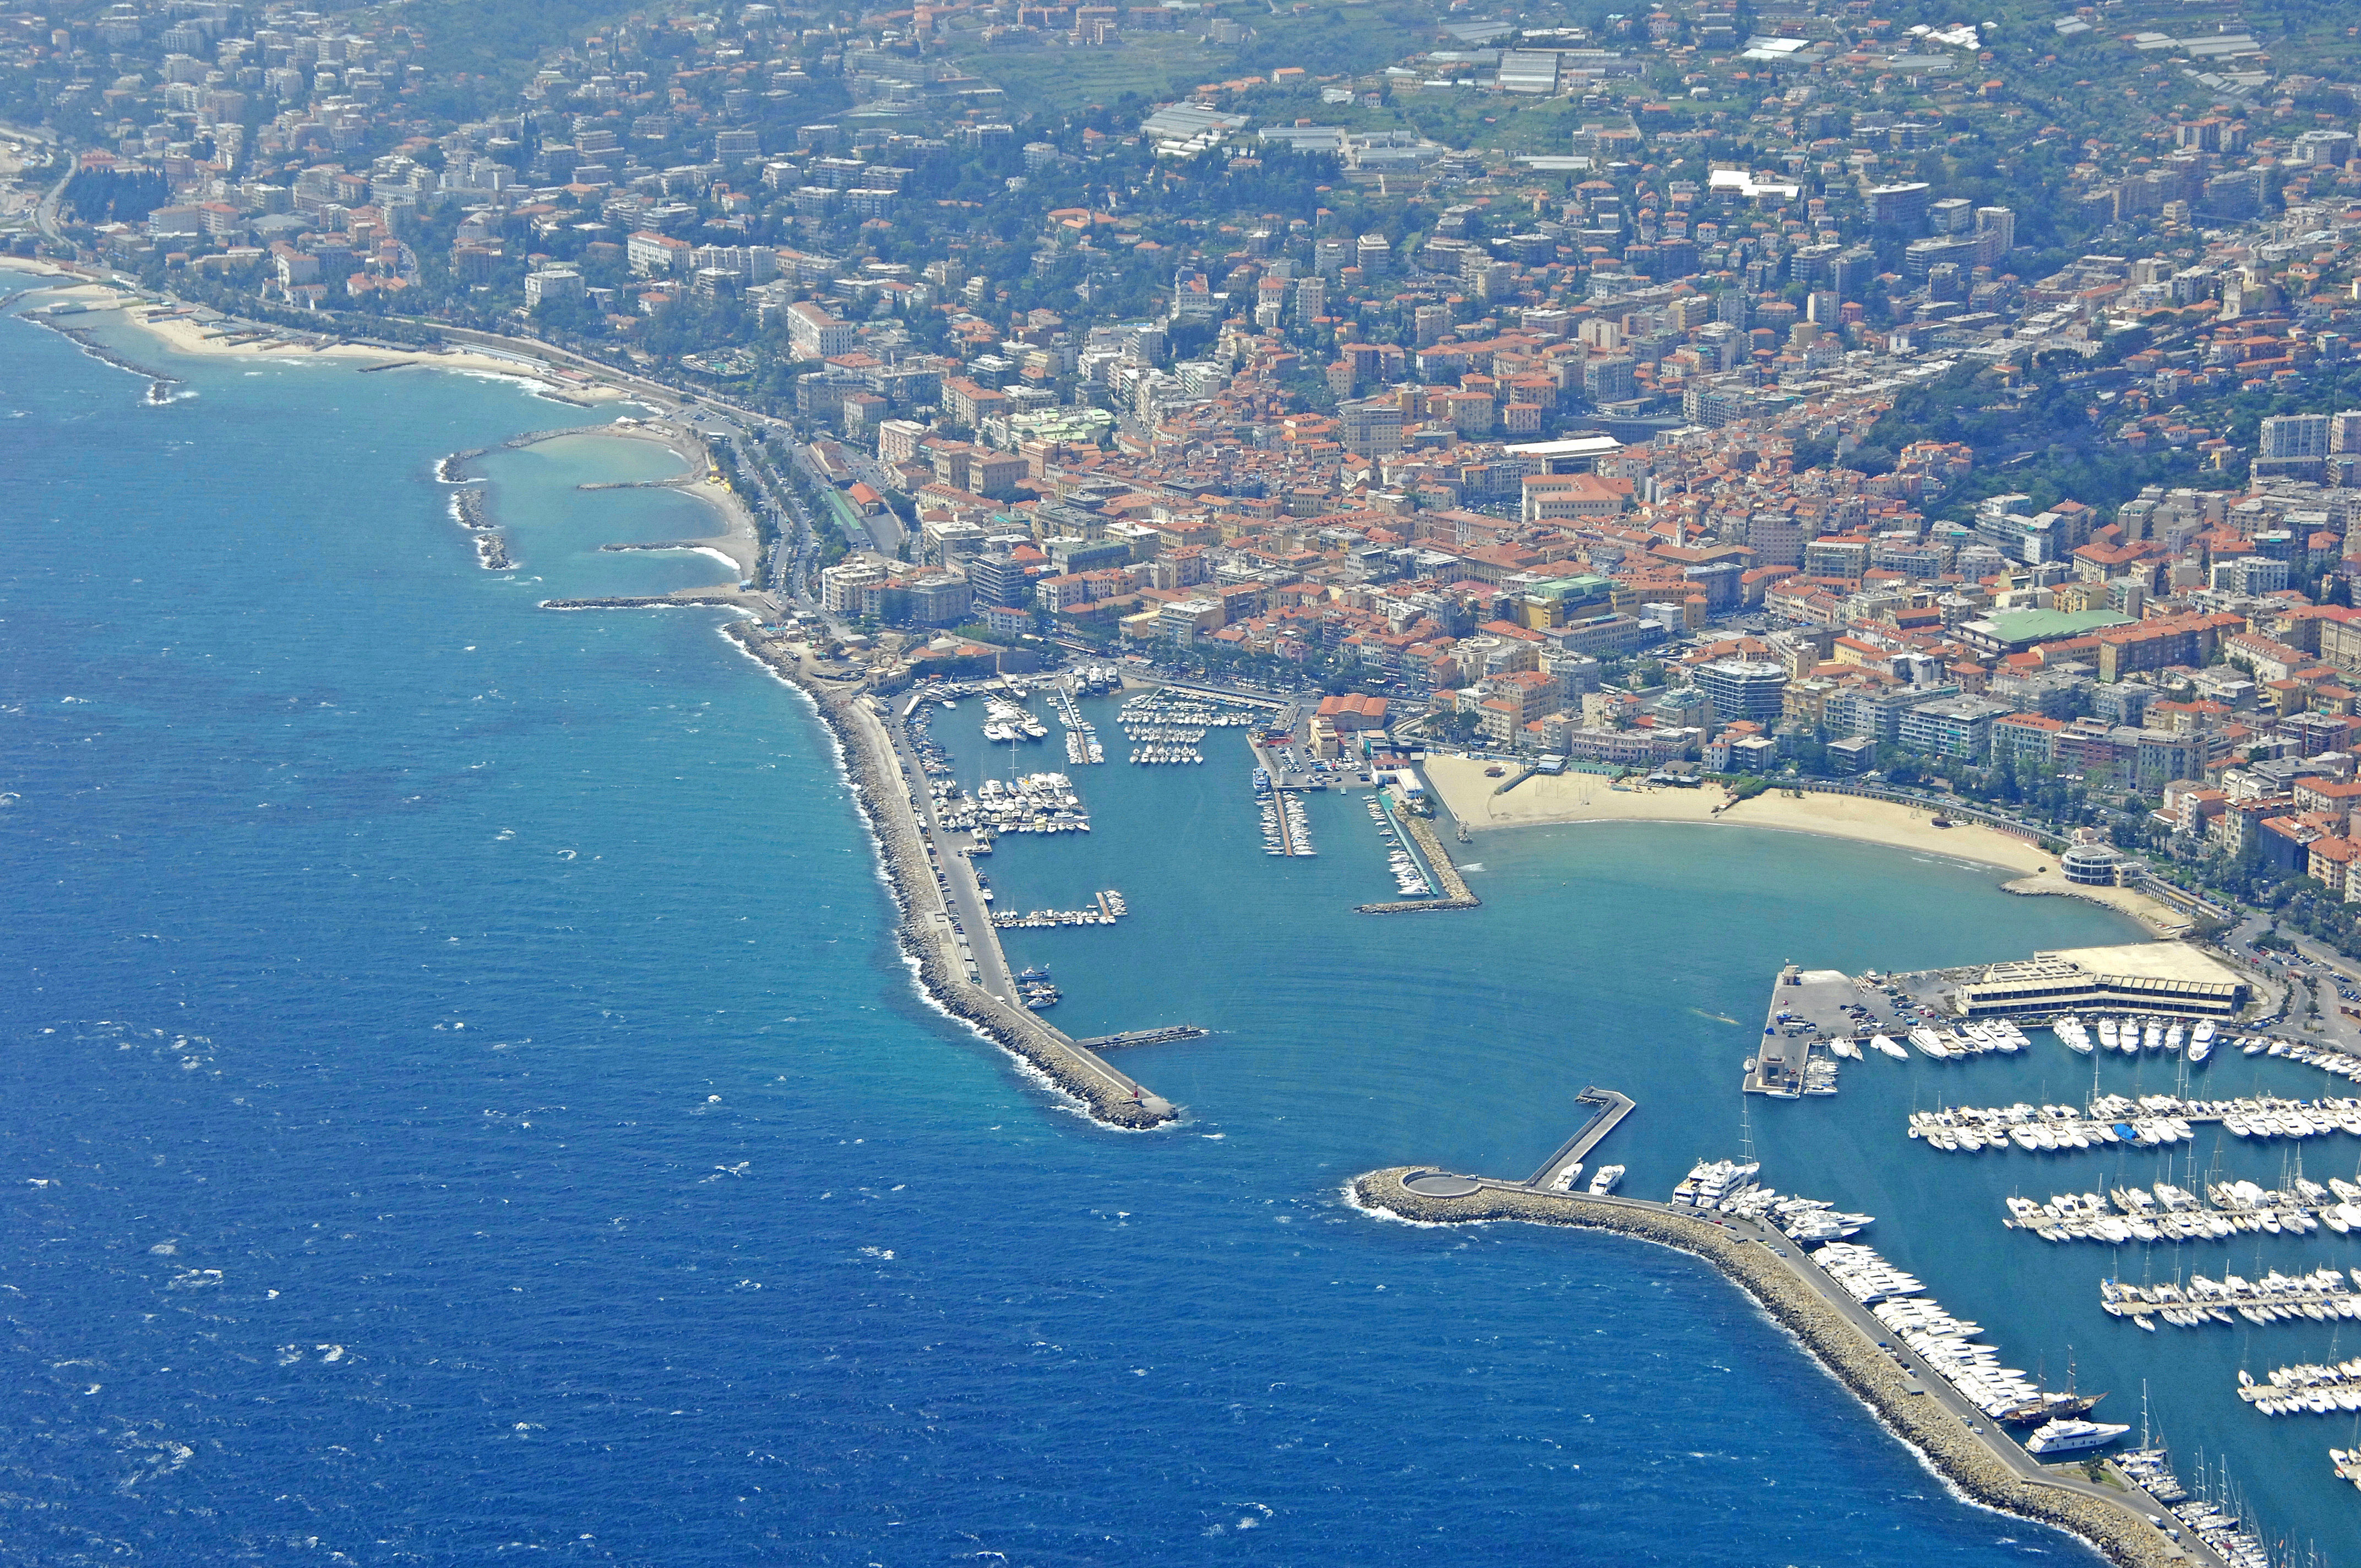 Zelt San Remo 6 : San remo public port in italy marina reviews phone